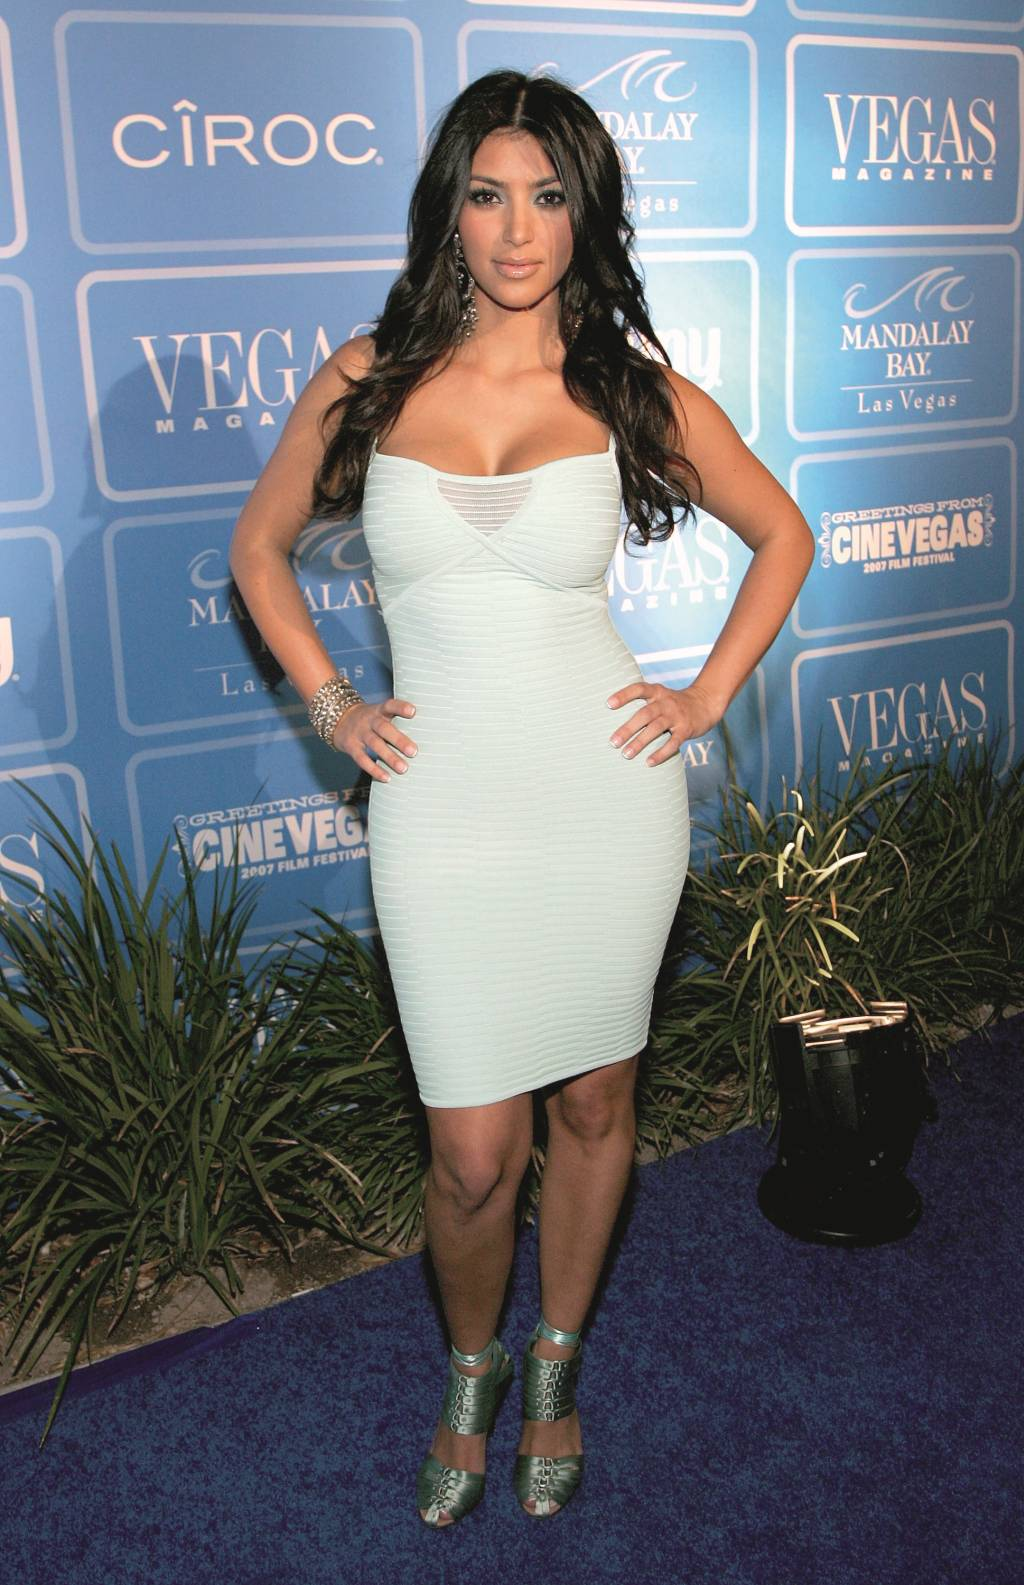 """LAS VEGAS - JUNE 16:  Socialite Kim Kardashian arrives at the fourth anniversary party for """"Vegas Magazine"""" on the closing night of the CineVegas film festival at the Mandalay Bay Resort & Casino June 16, 2007 in Las Vegas, Nevada.  (Photo by Ethan Miller/Getty Images for CineVegas) *** Local Caption *** Kim Kardashian"""